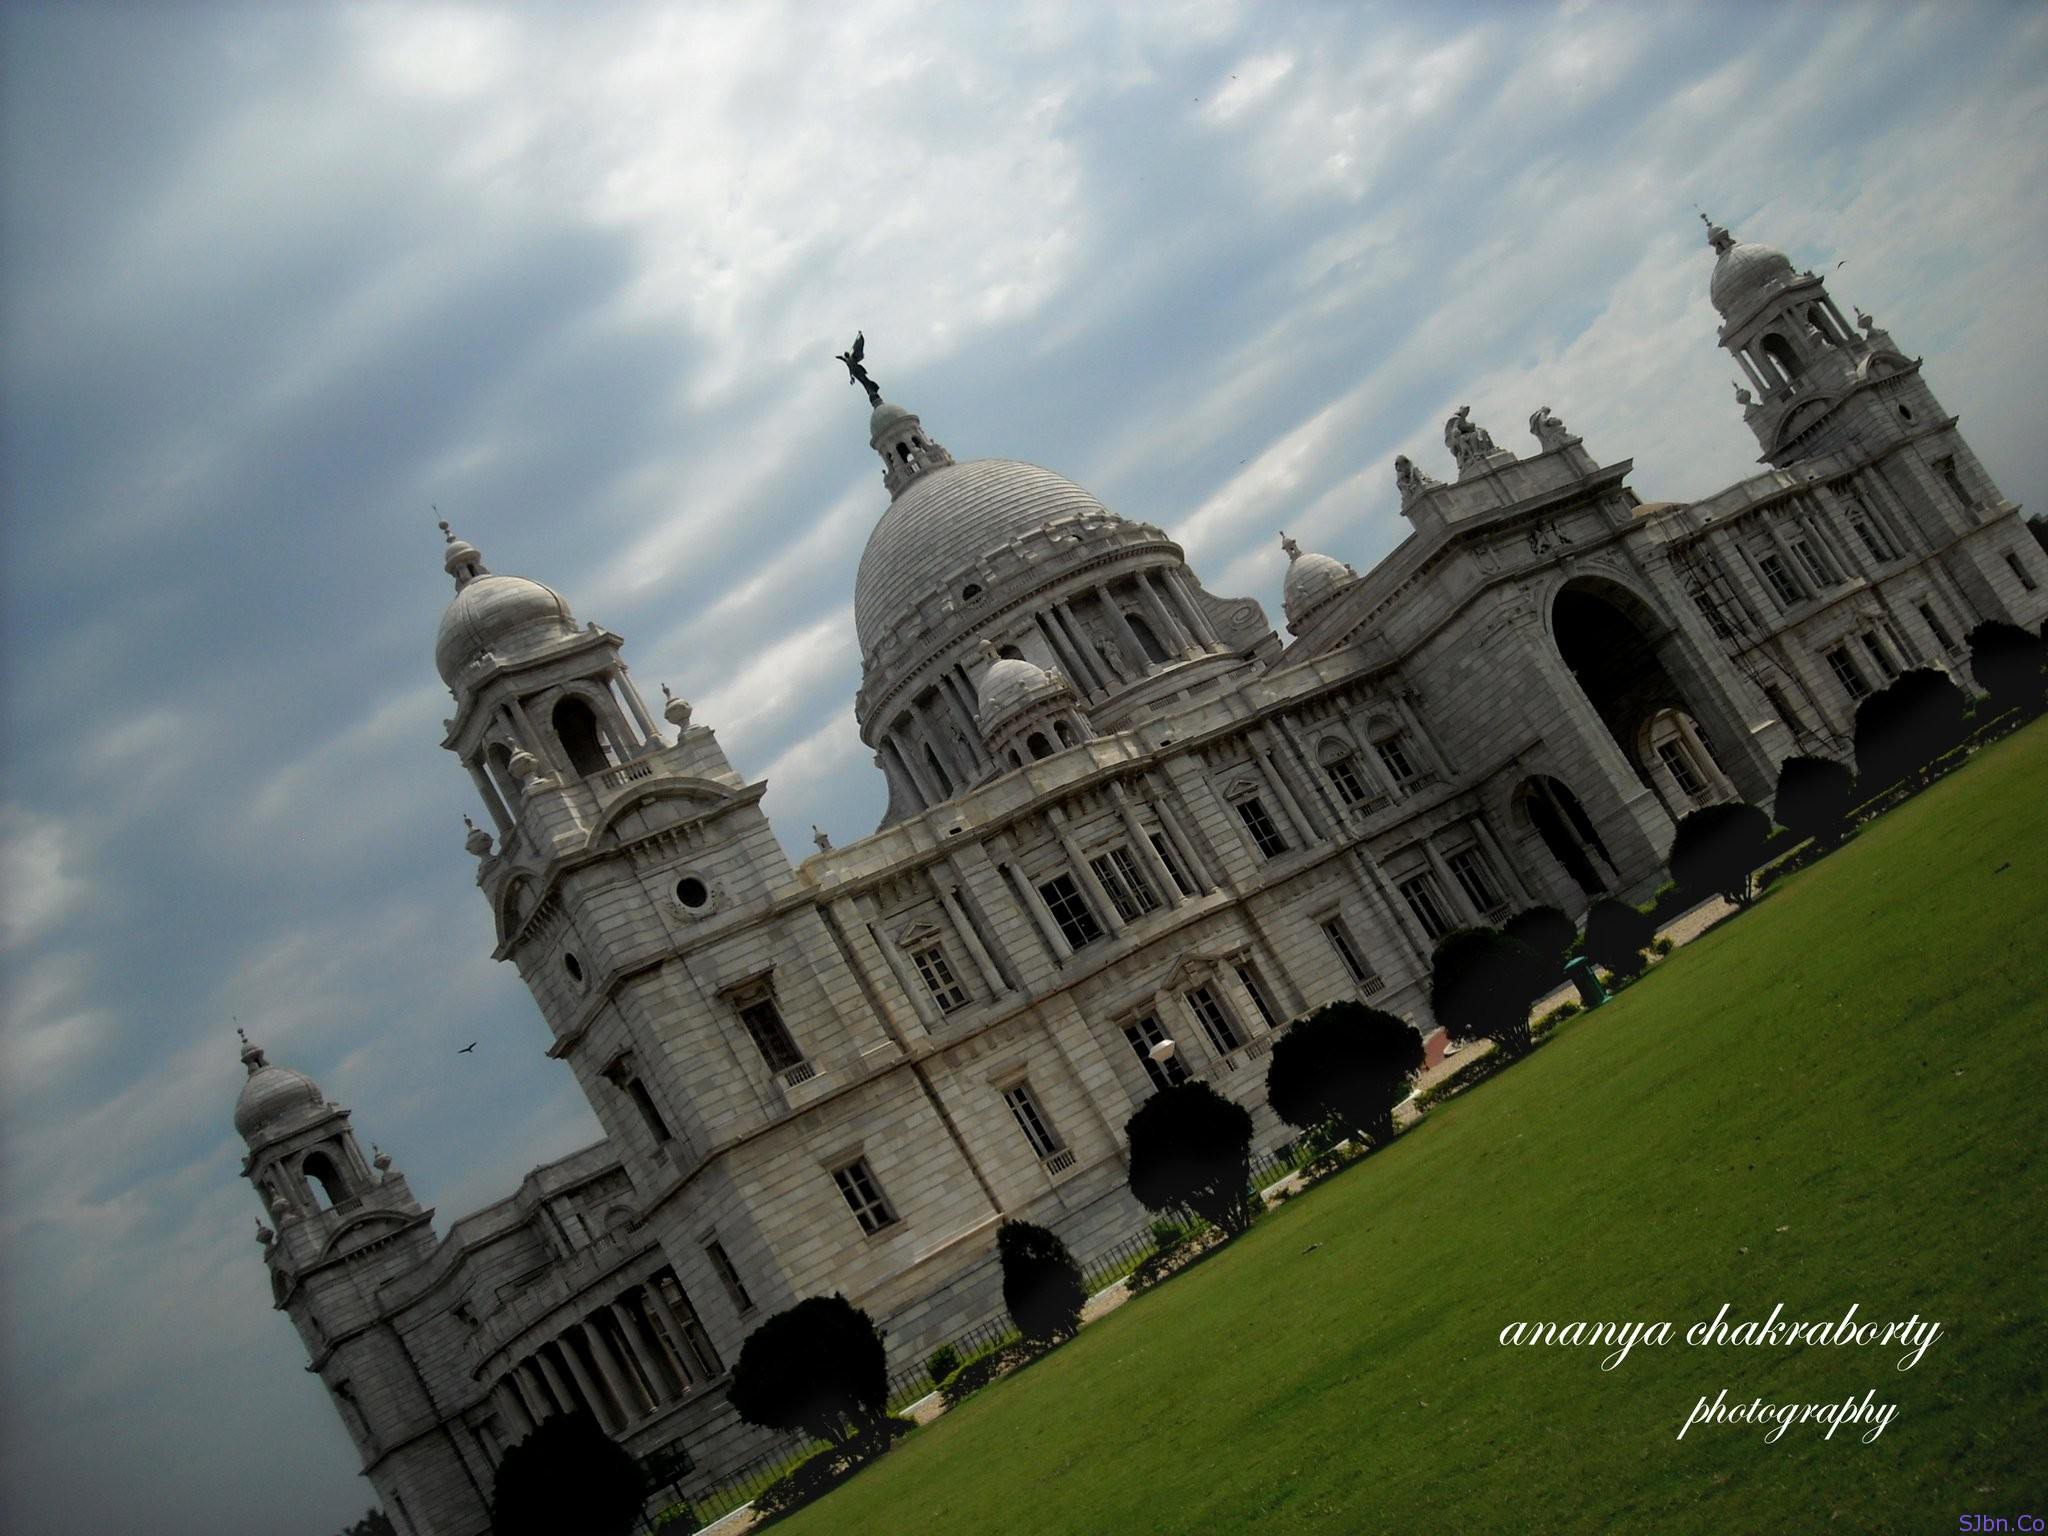 Victoria Memorial image by Ananya Chakraborty